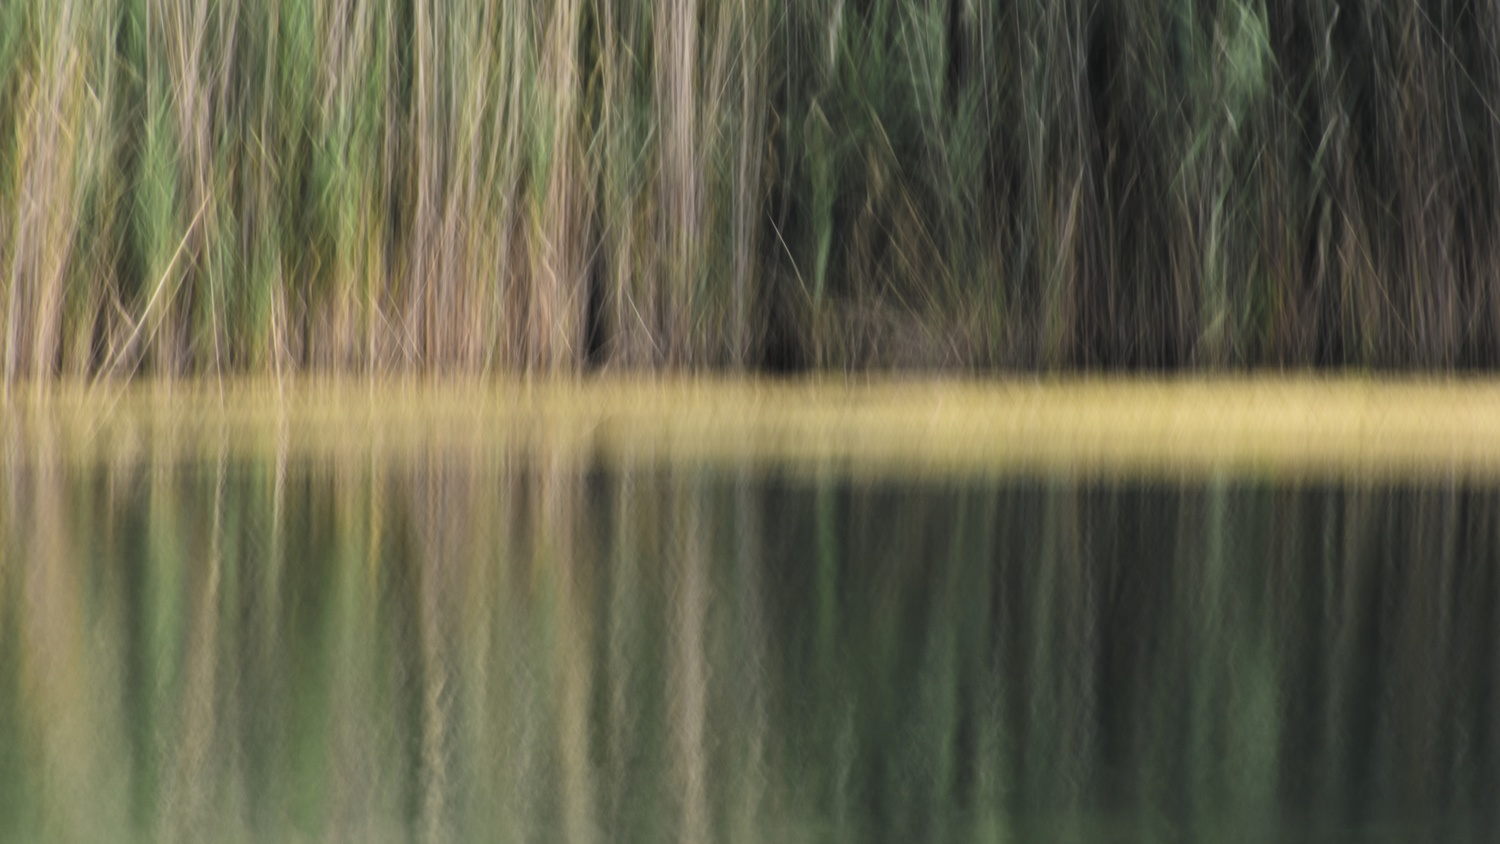 Reeds on the Pond by Matthew Lacy